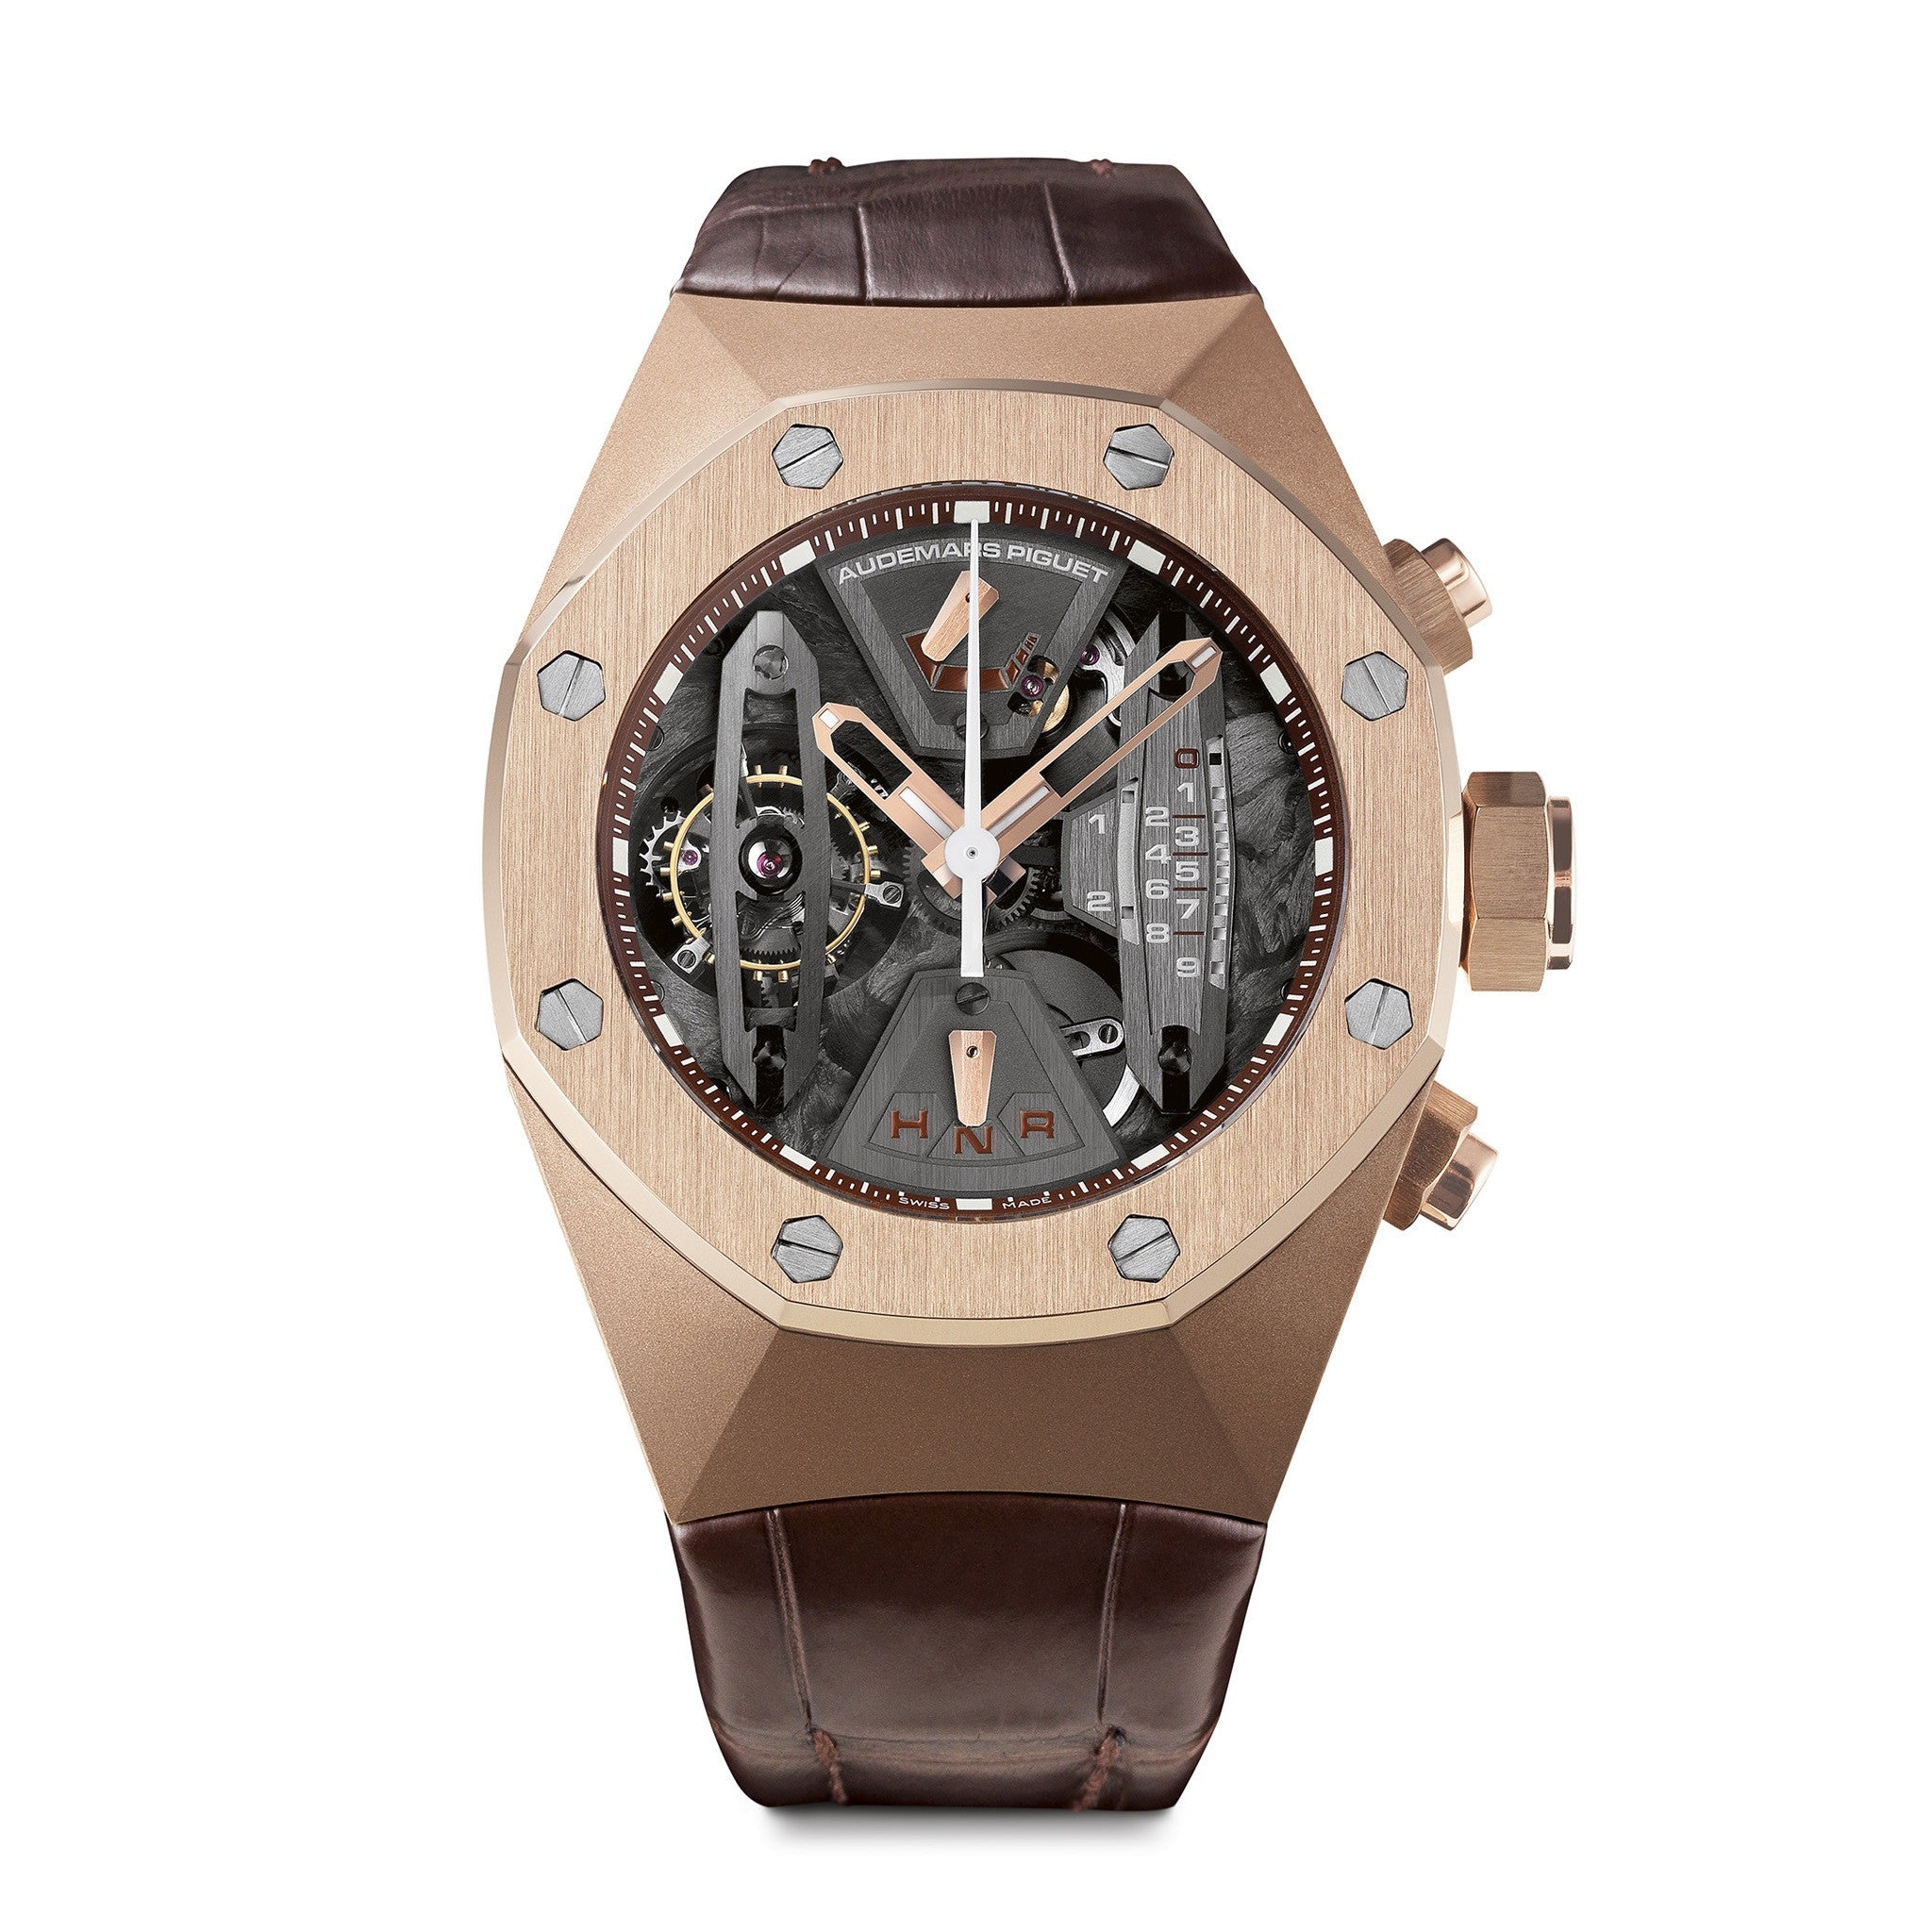 Royal Oak Concept Tourbillon Chronograph 26223OR.OO.D099CR.01 - Audemars Piguet